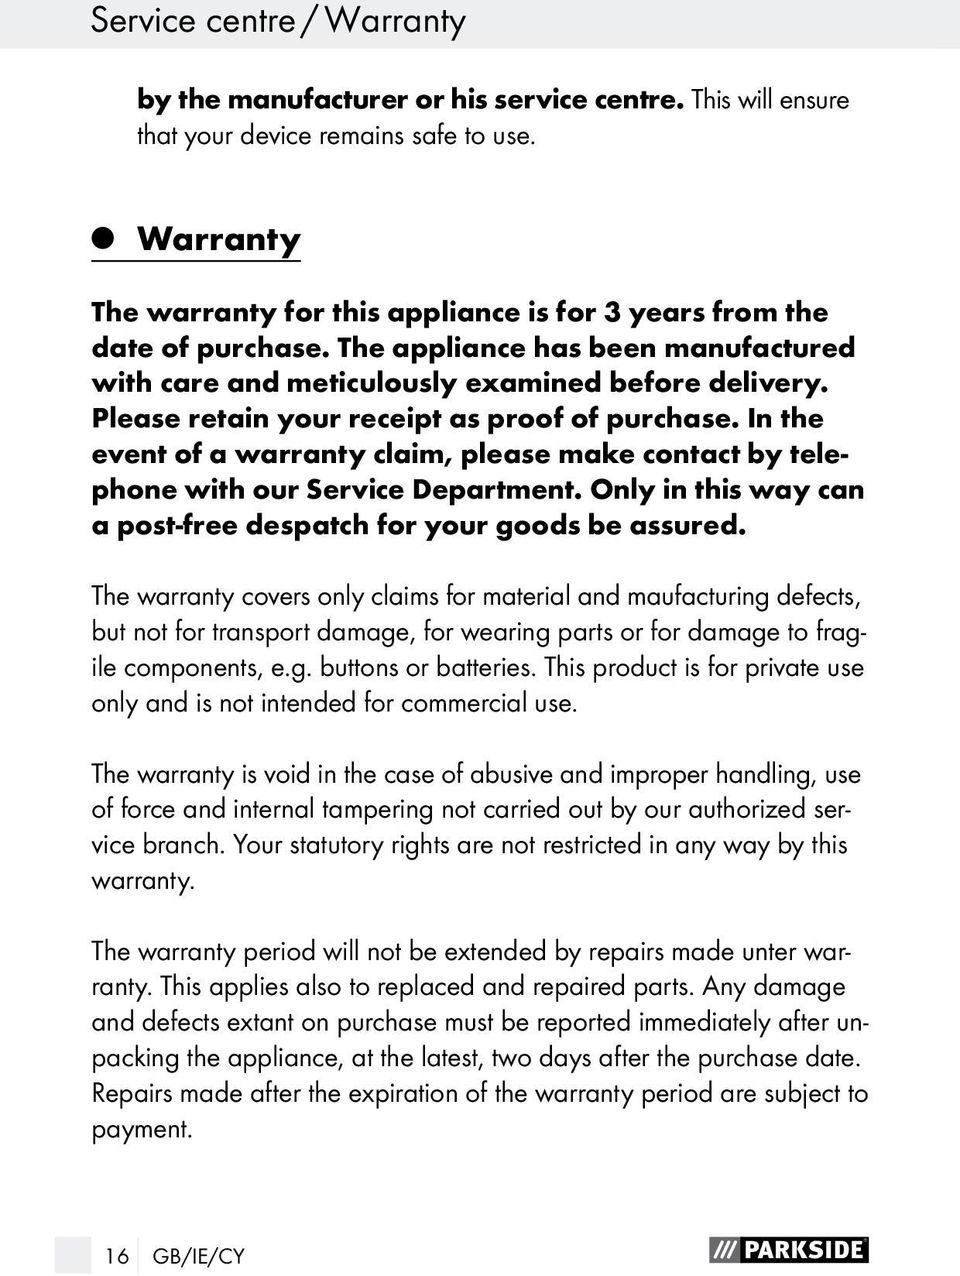 Please retain your receipt as proof of purchase. In the event of a warranty claim, please make contact by telephone with our Service Department.